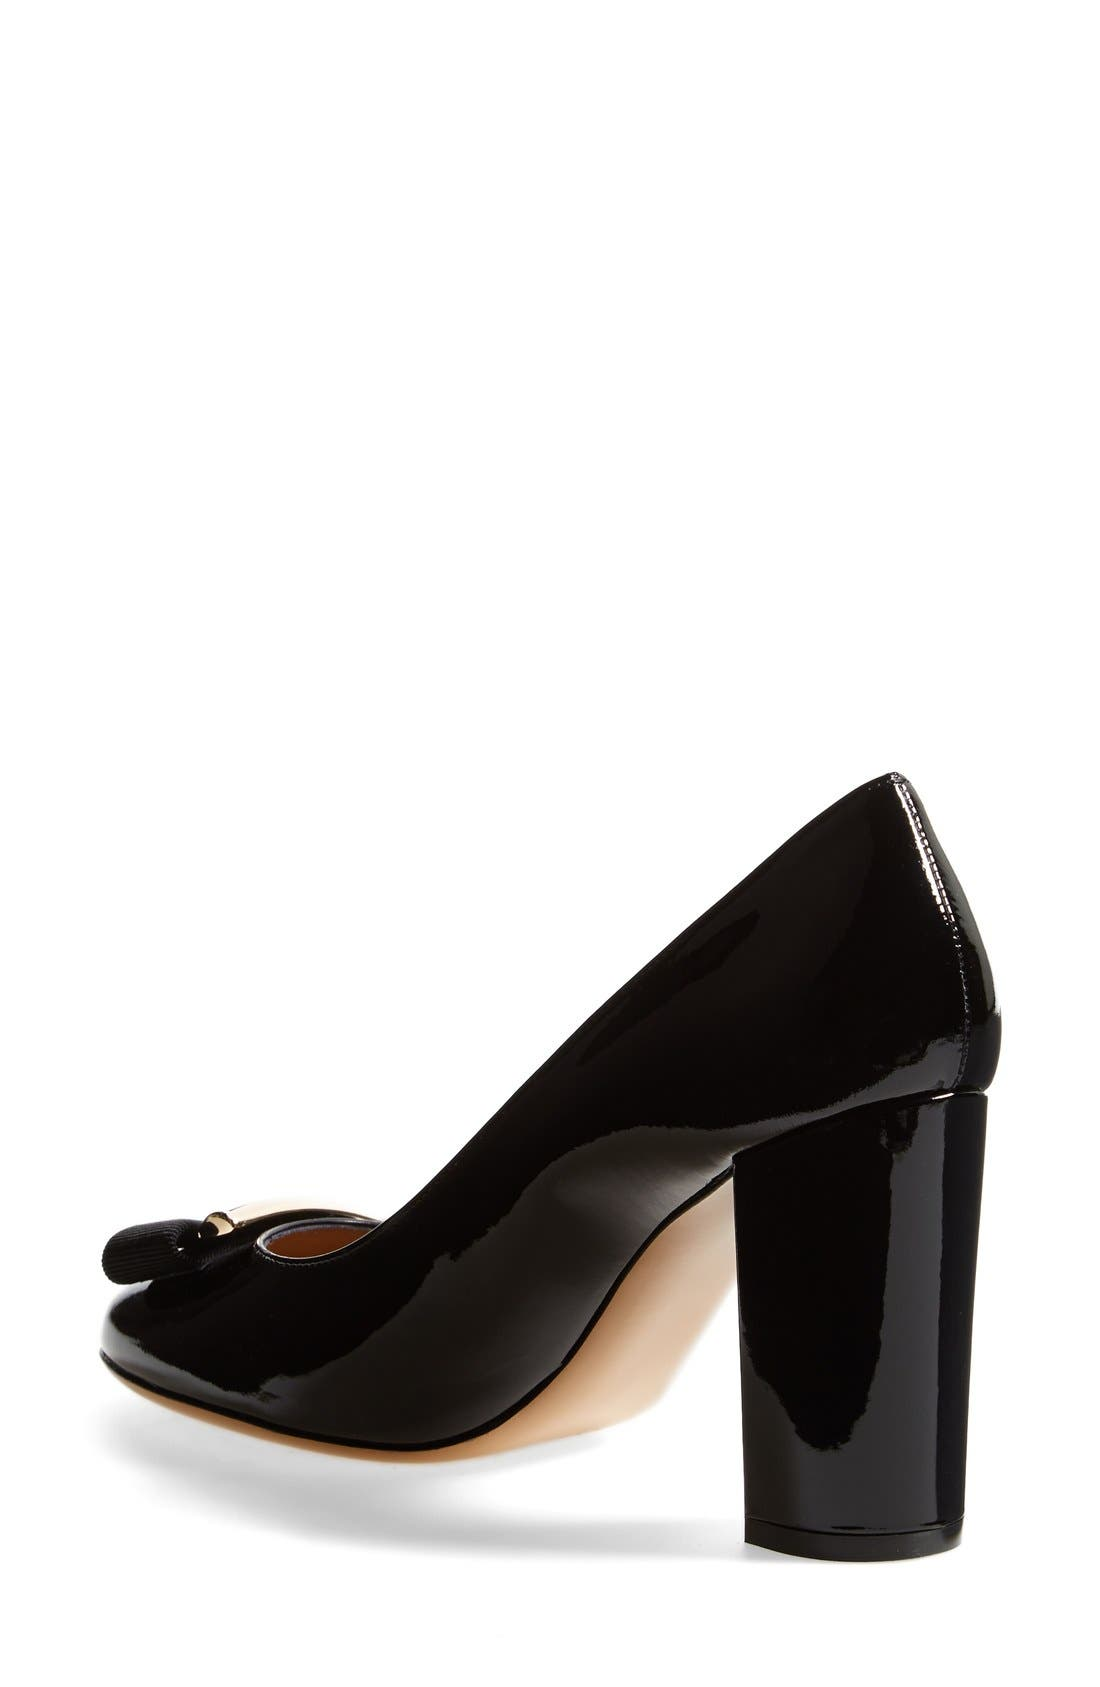 Alternate Image 2  - Salvatore Ferragamo 'Ninna 85' Pump (Women)